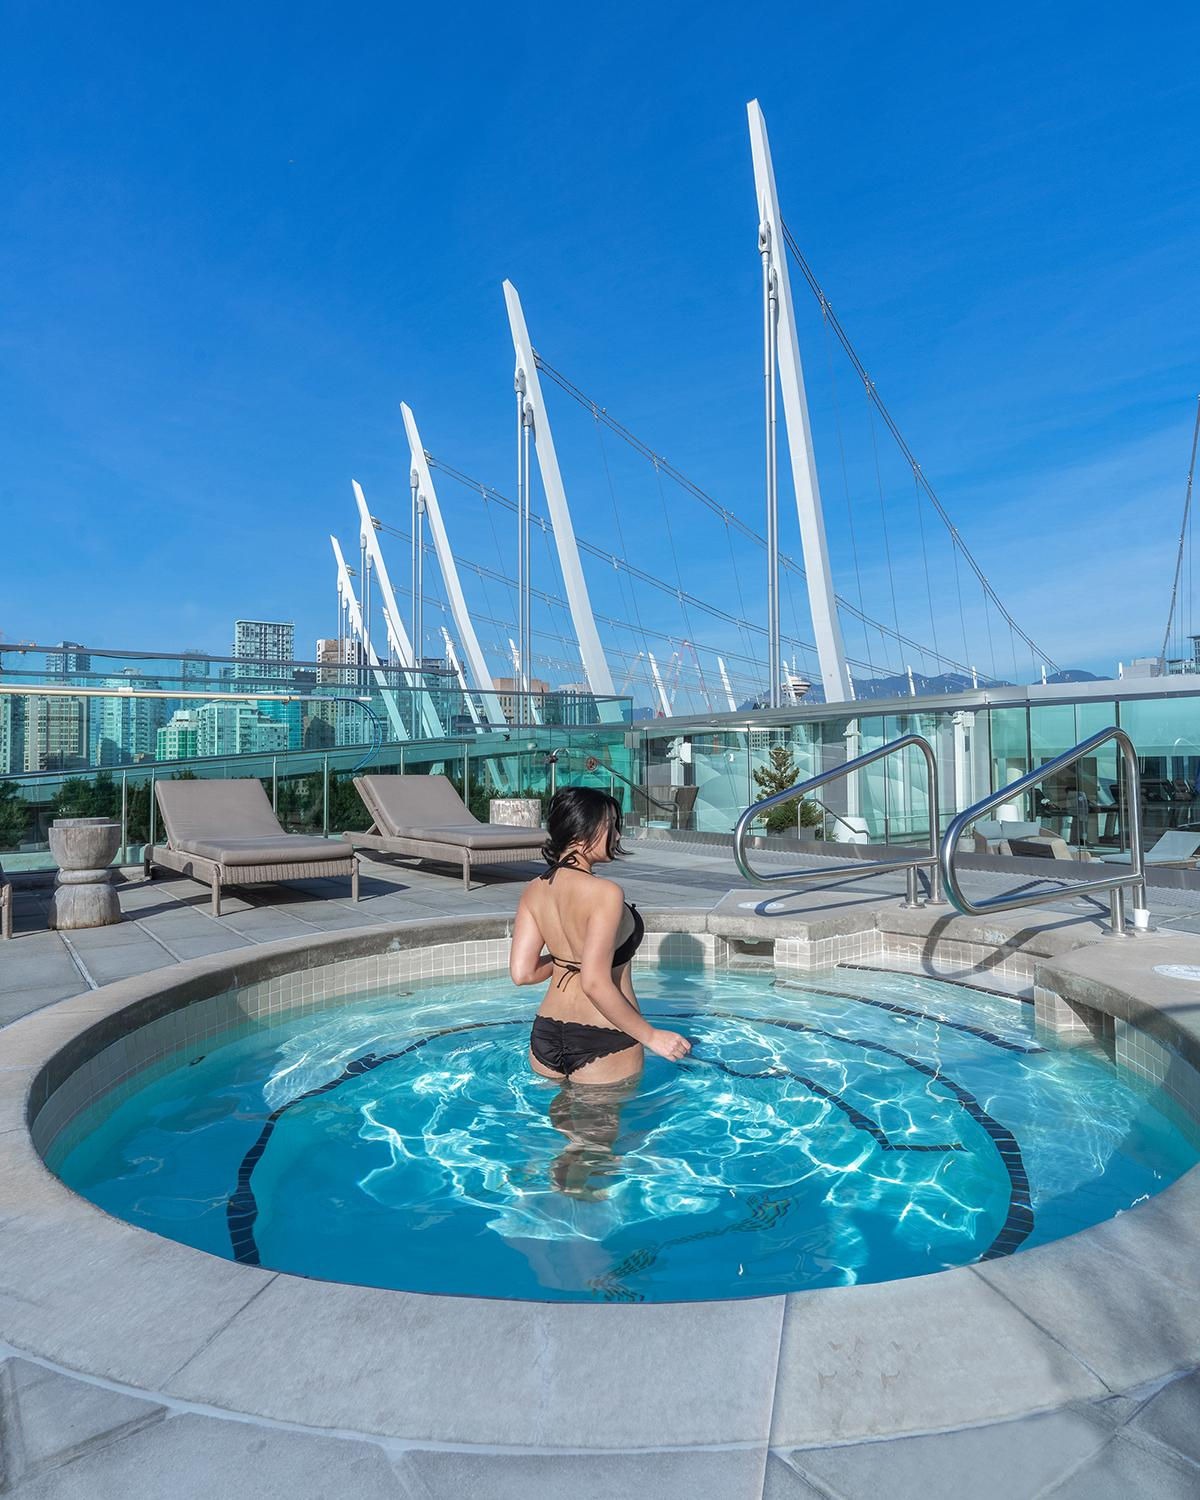 Rooftop heated whirlpool at JW Marriott Parq Vancouver.